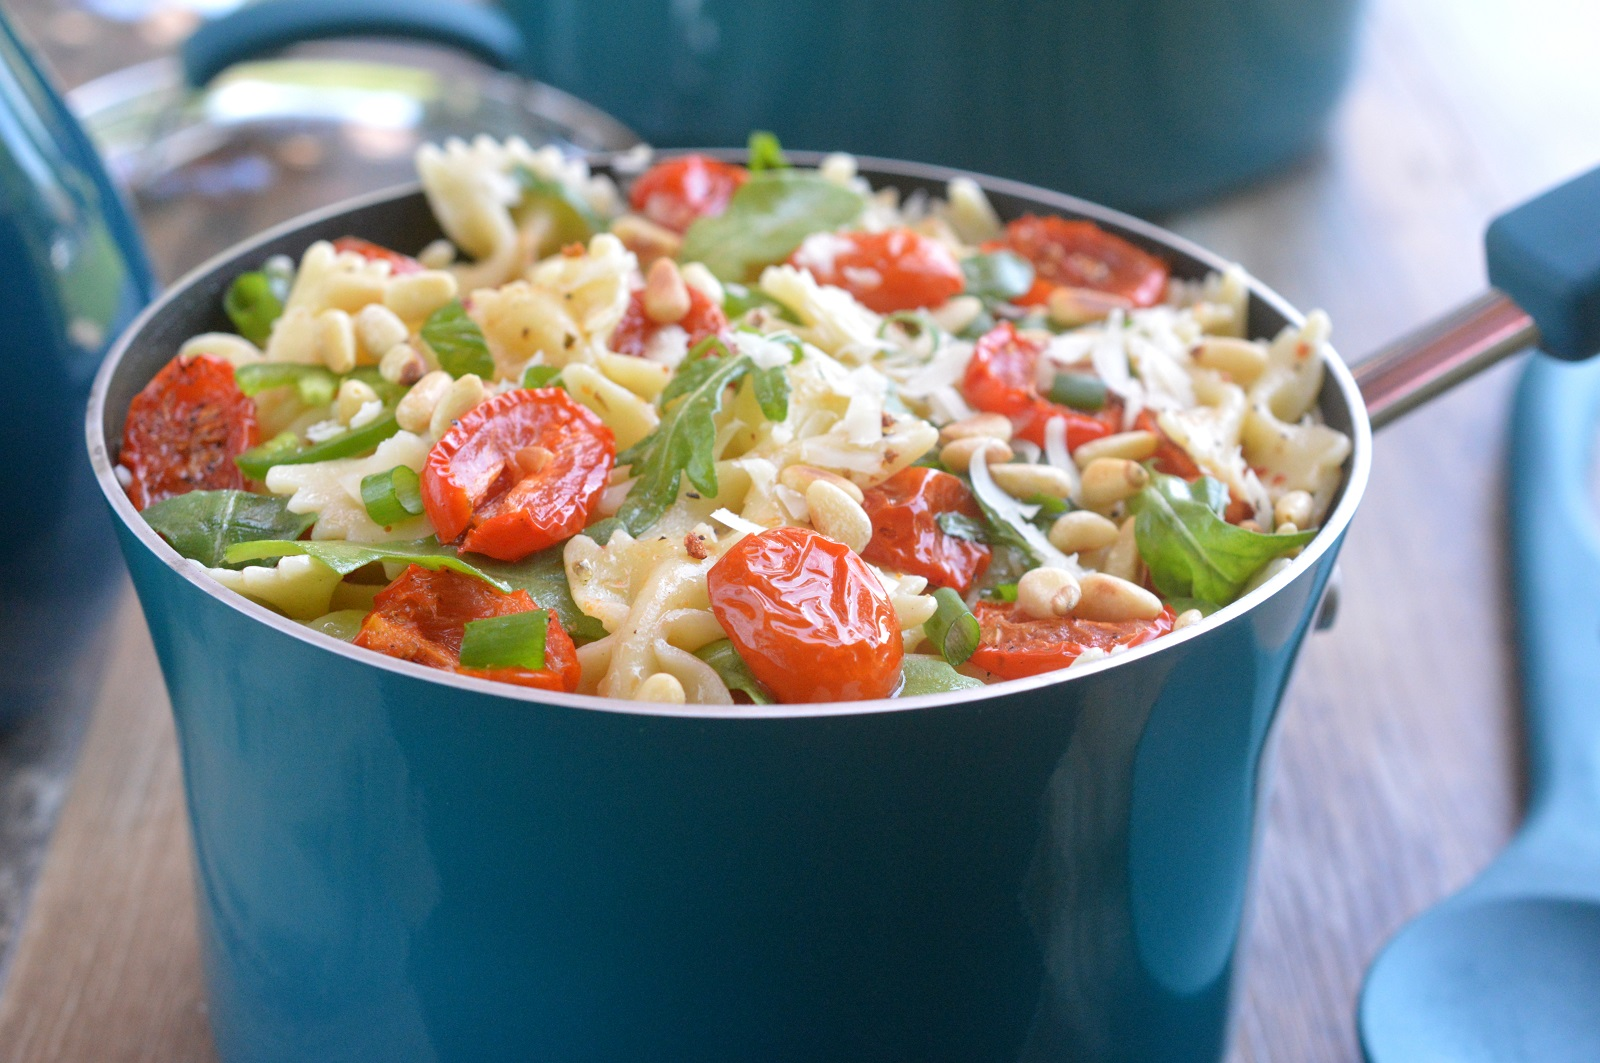 Pasta Salad with Roasted Tomatoes and Pine Nuts in Rachael Ray Marine Blue Cookware